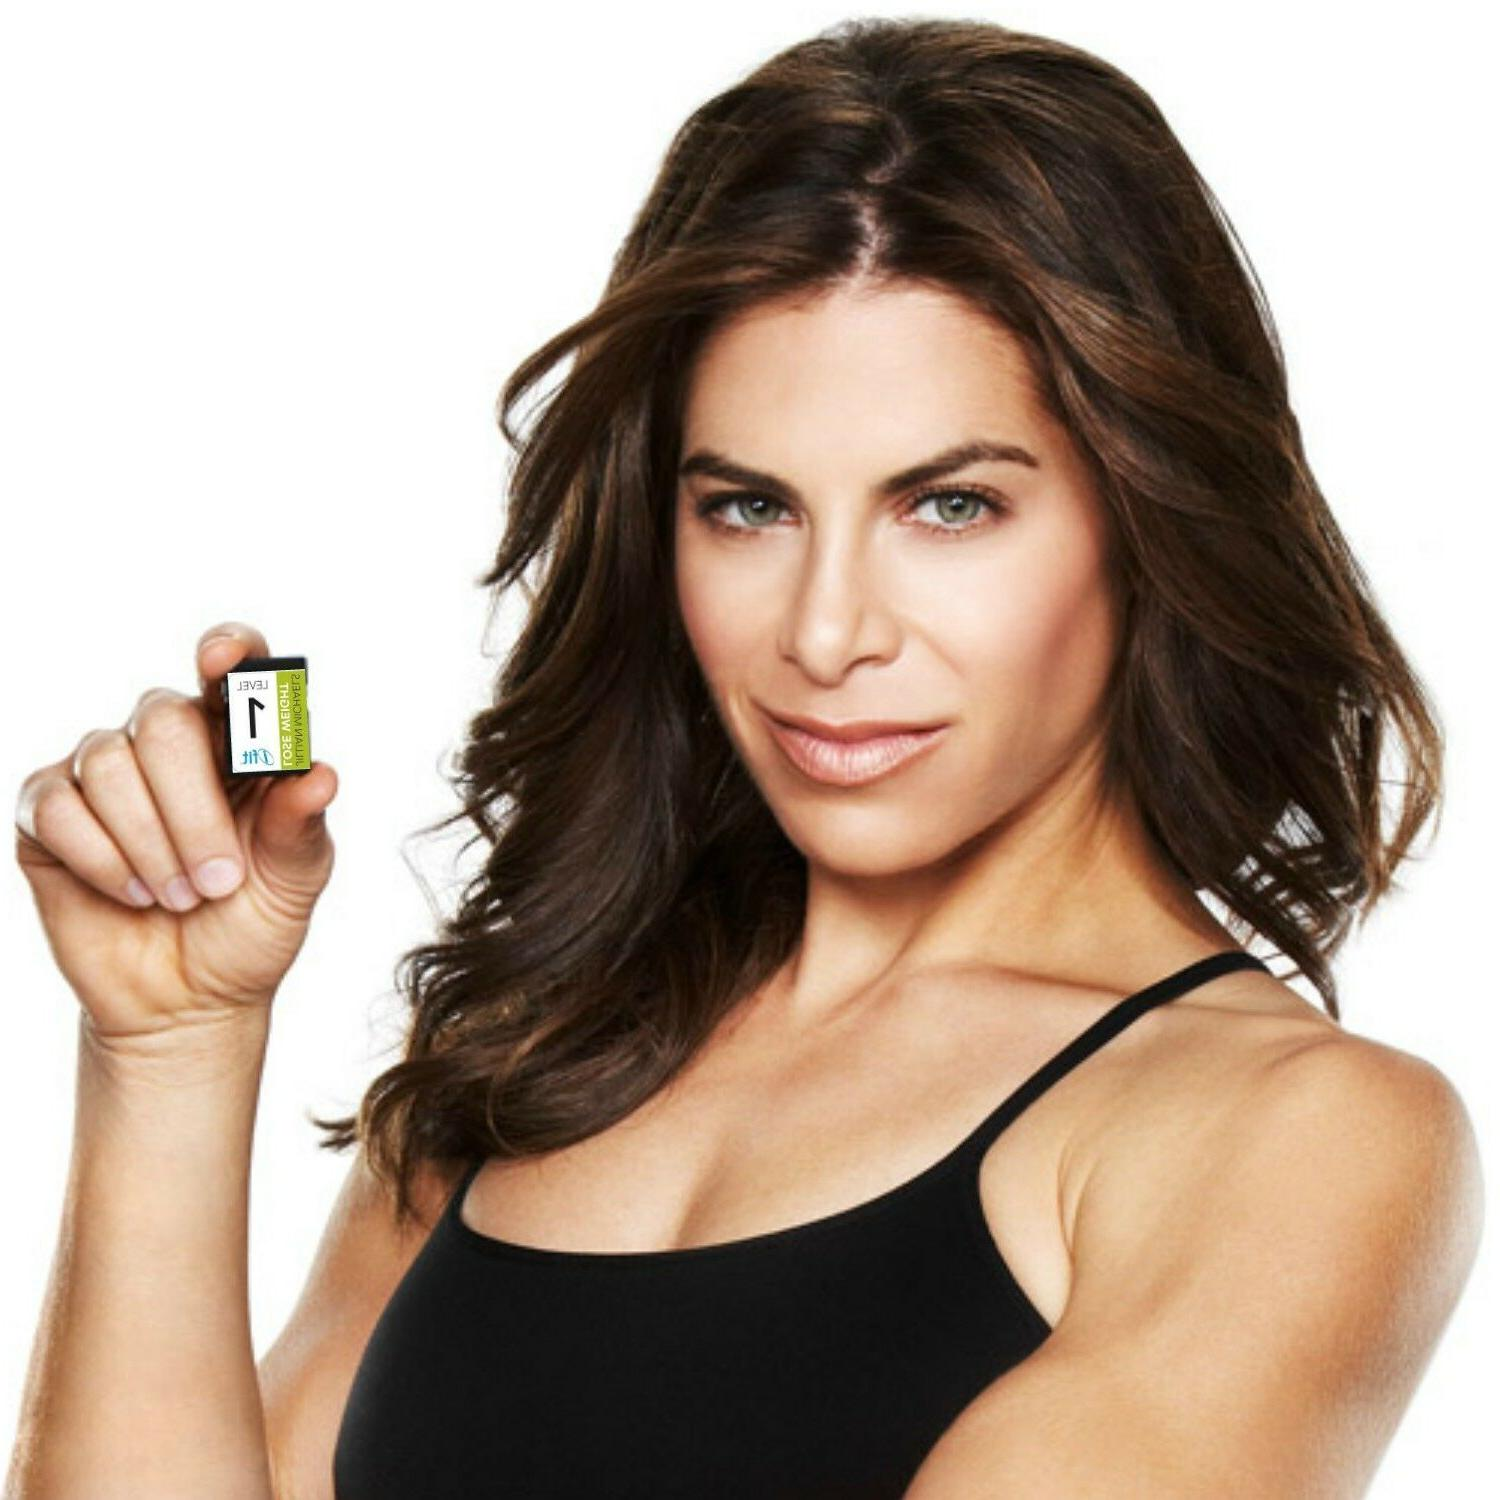 iFIT CARD Loss Program Level 1 Workout